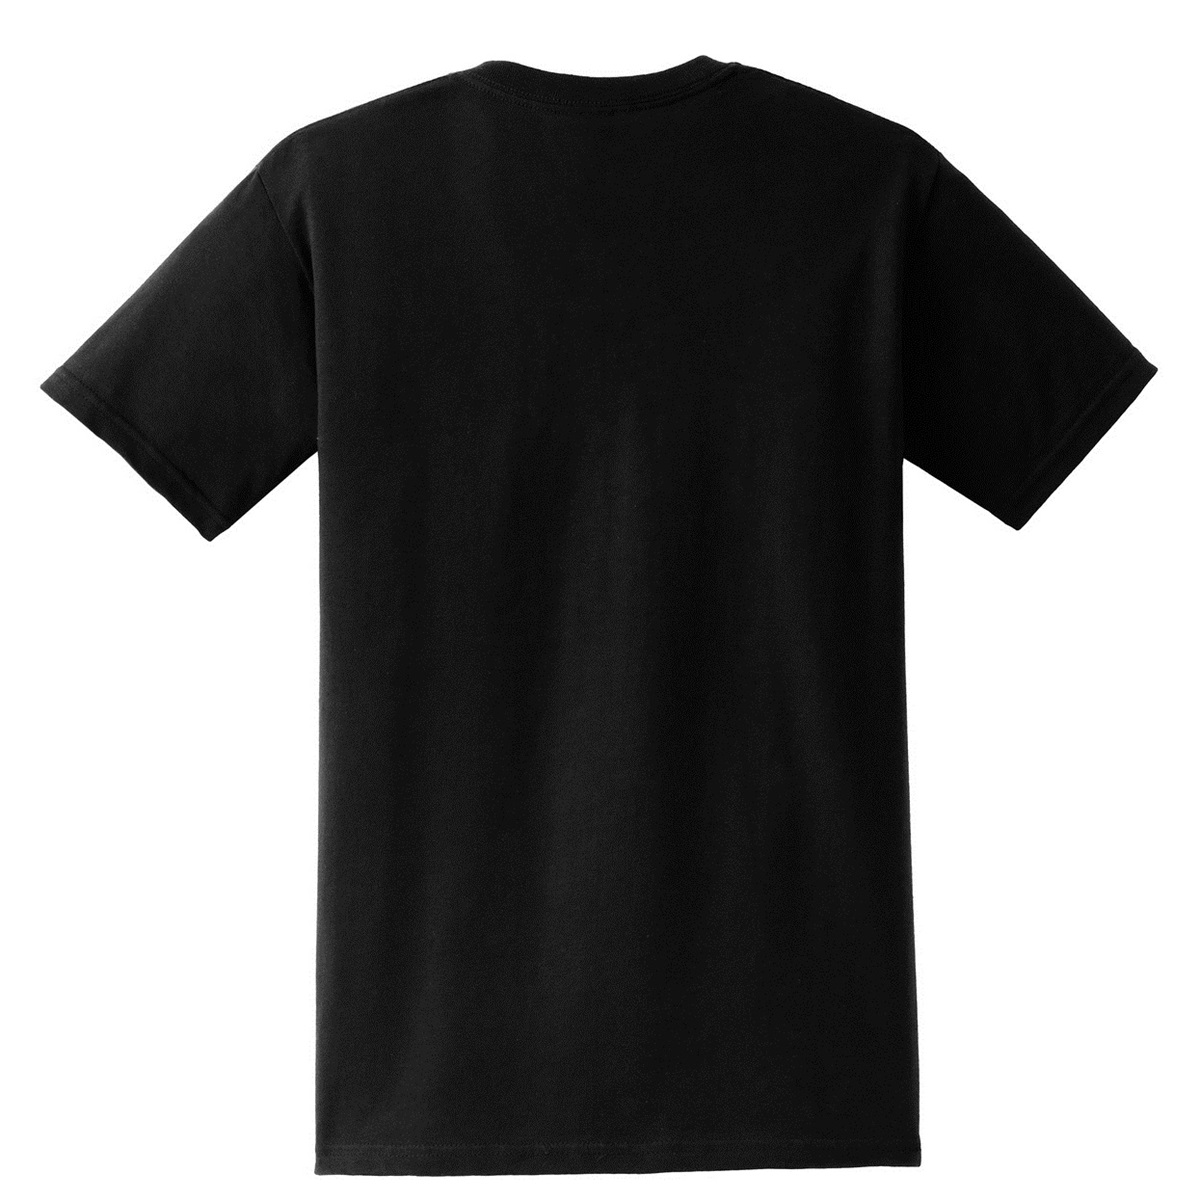 Gildan 2300 ultra cotton t shirt with pocket black for Gildan t shirts online